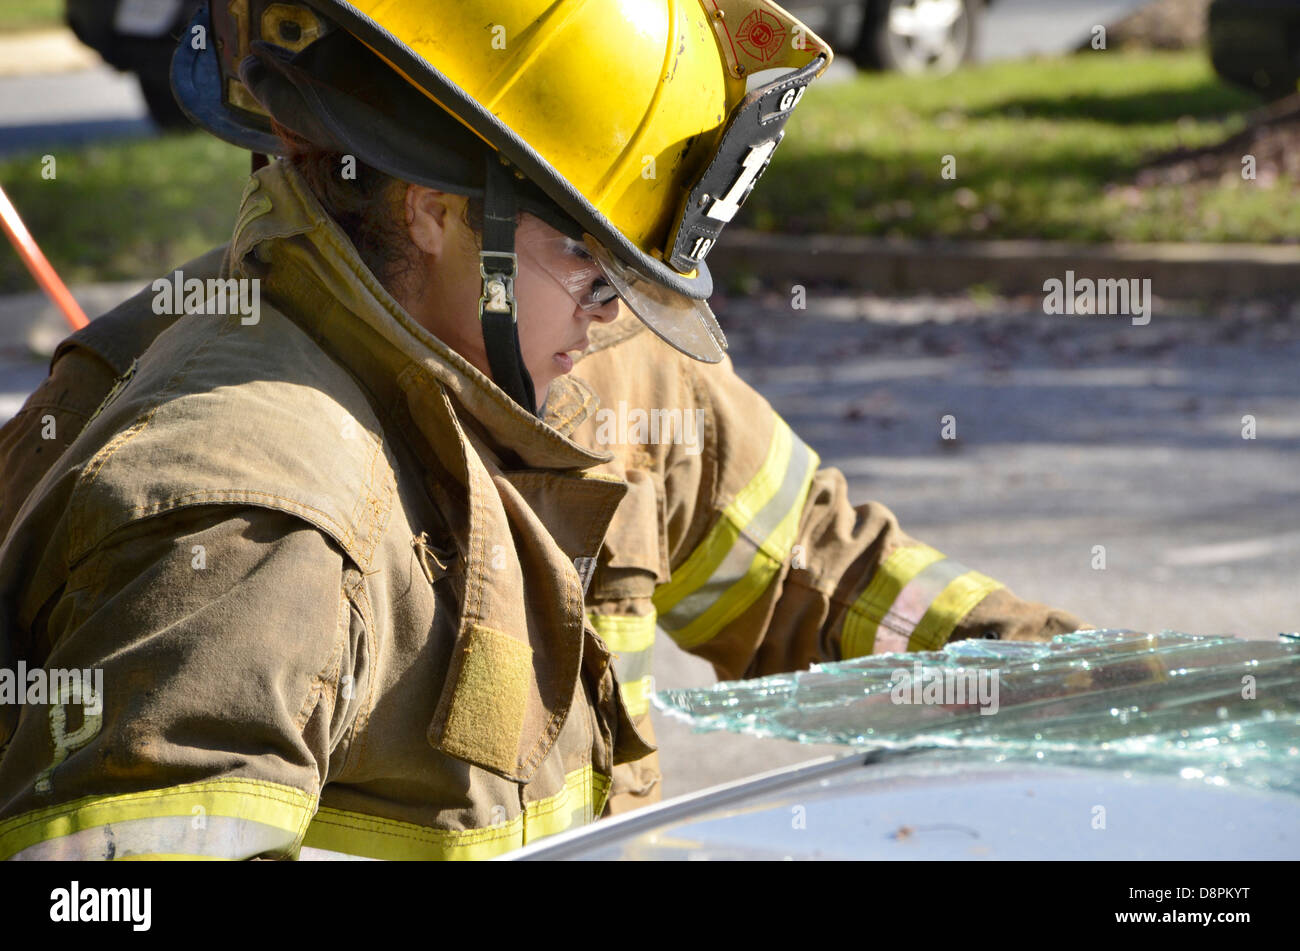 female firefighter - Stock Image